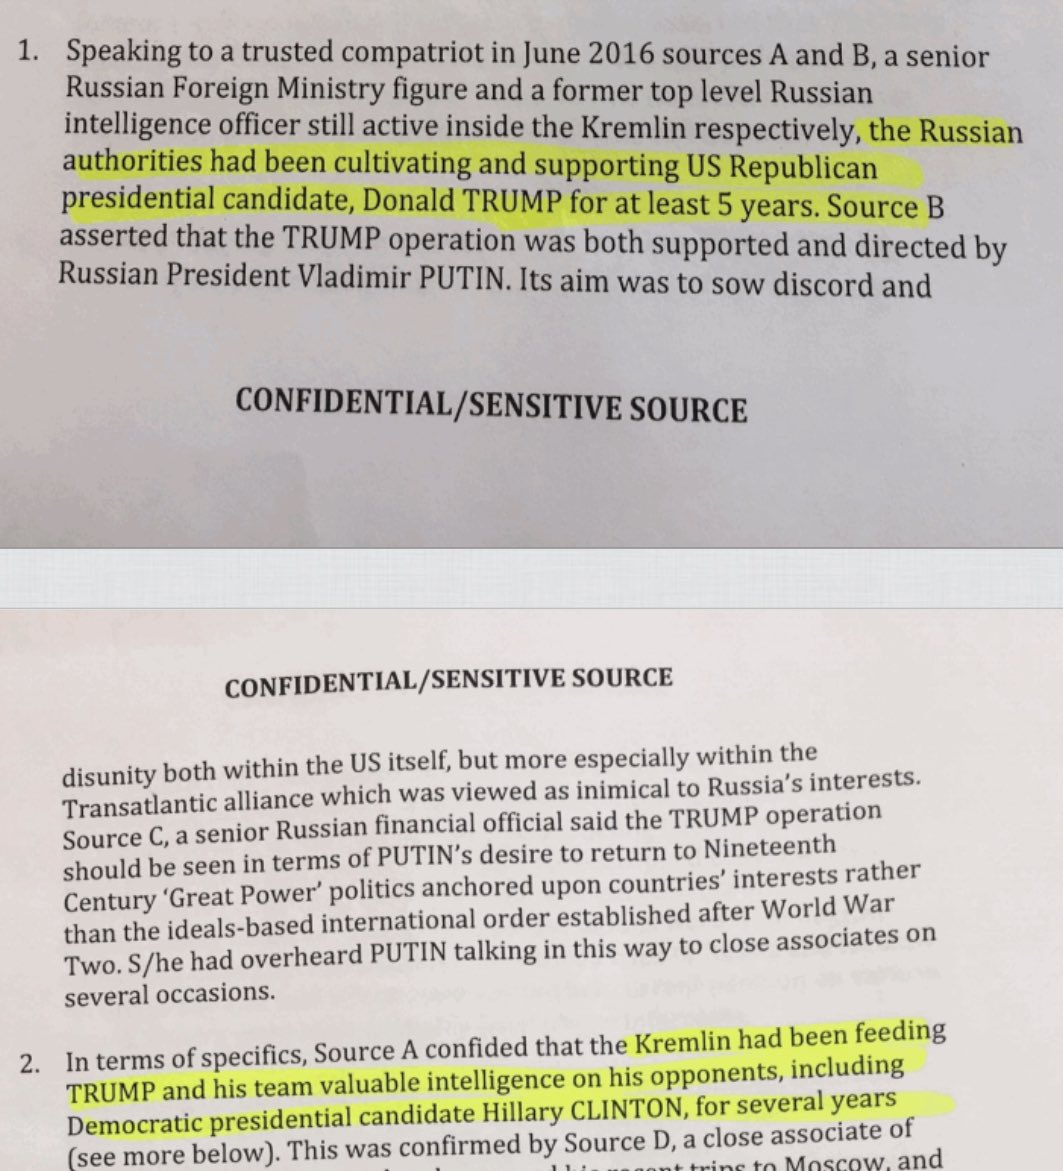 Extraordinary alleged details about extent of Trump campaign cooperation with Putin. https://t.co/e4iNrNKgrh https://t.co/GNH9hIybYM